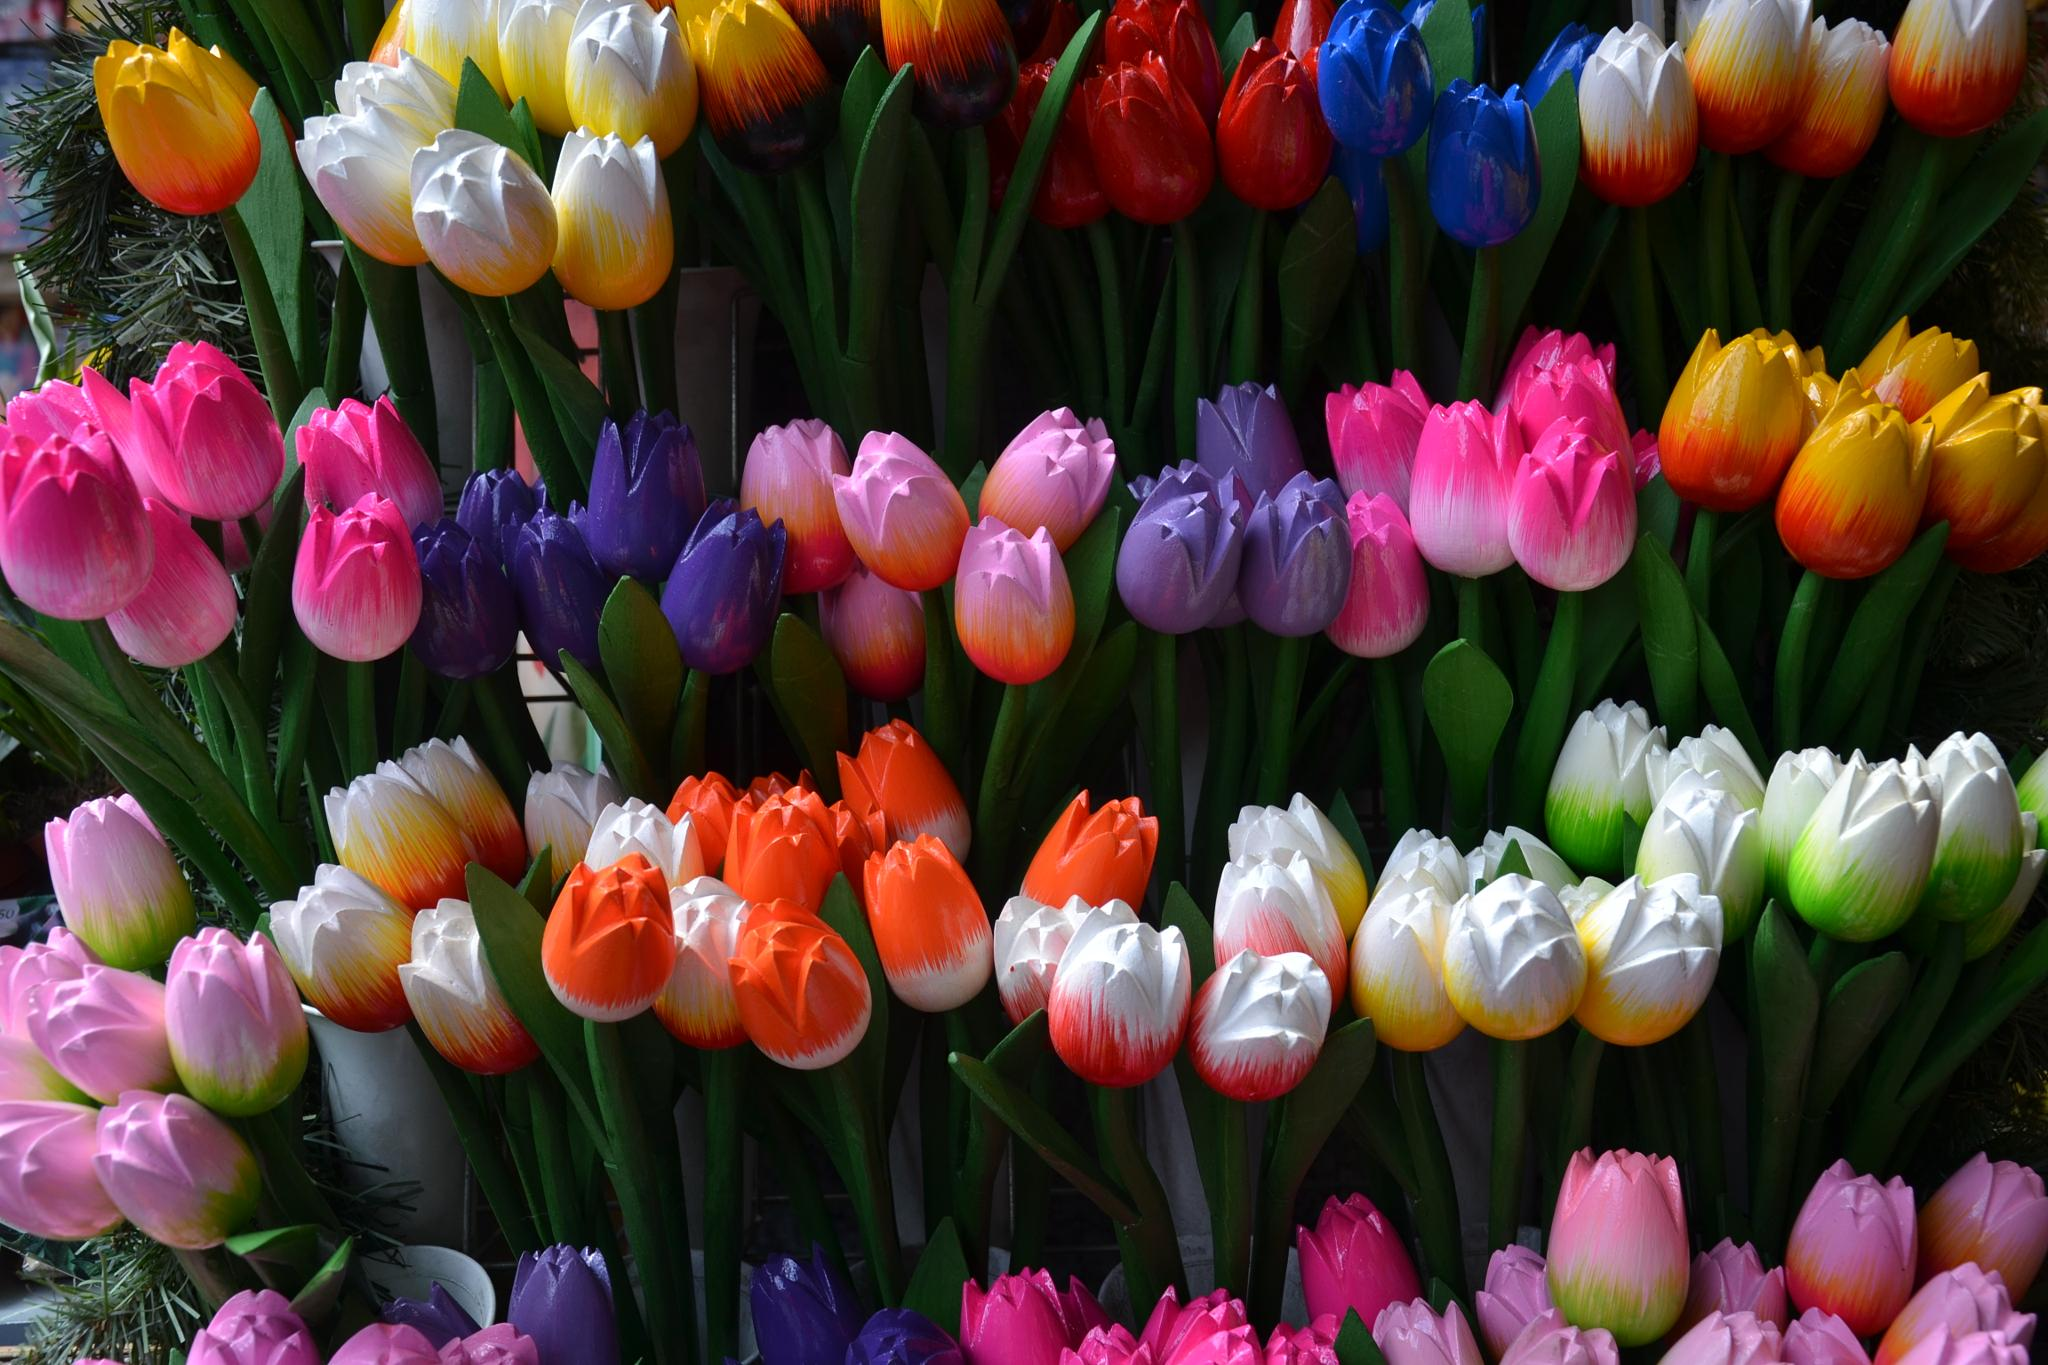 Tulipanes by xemariagil